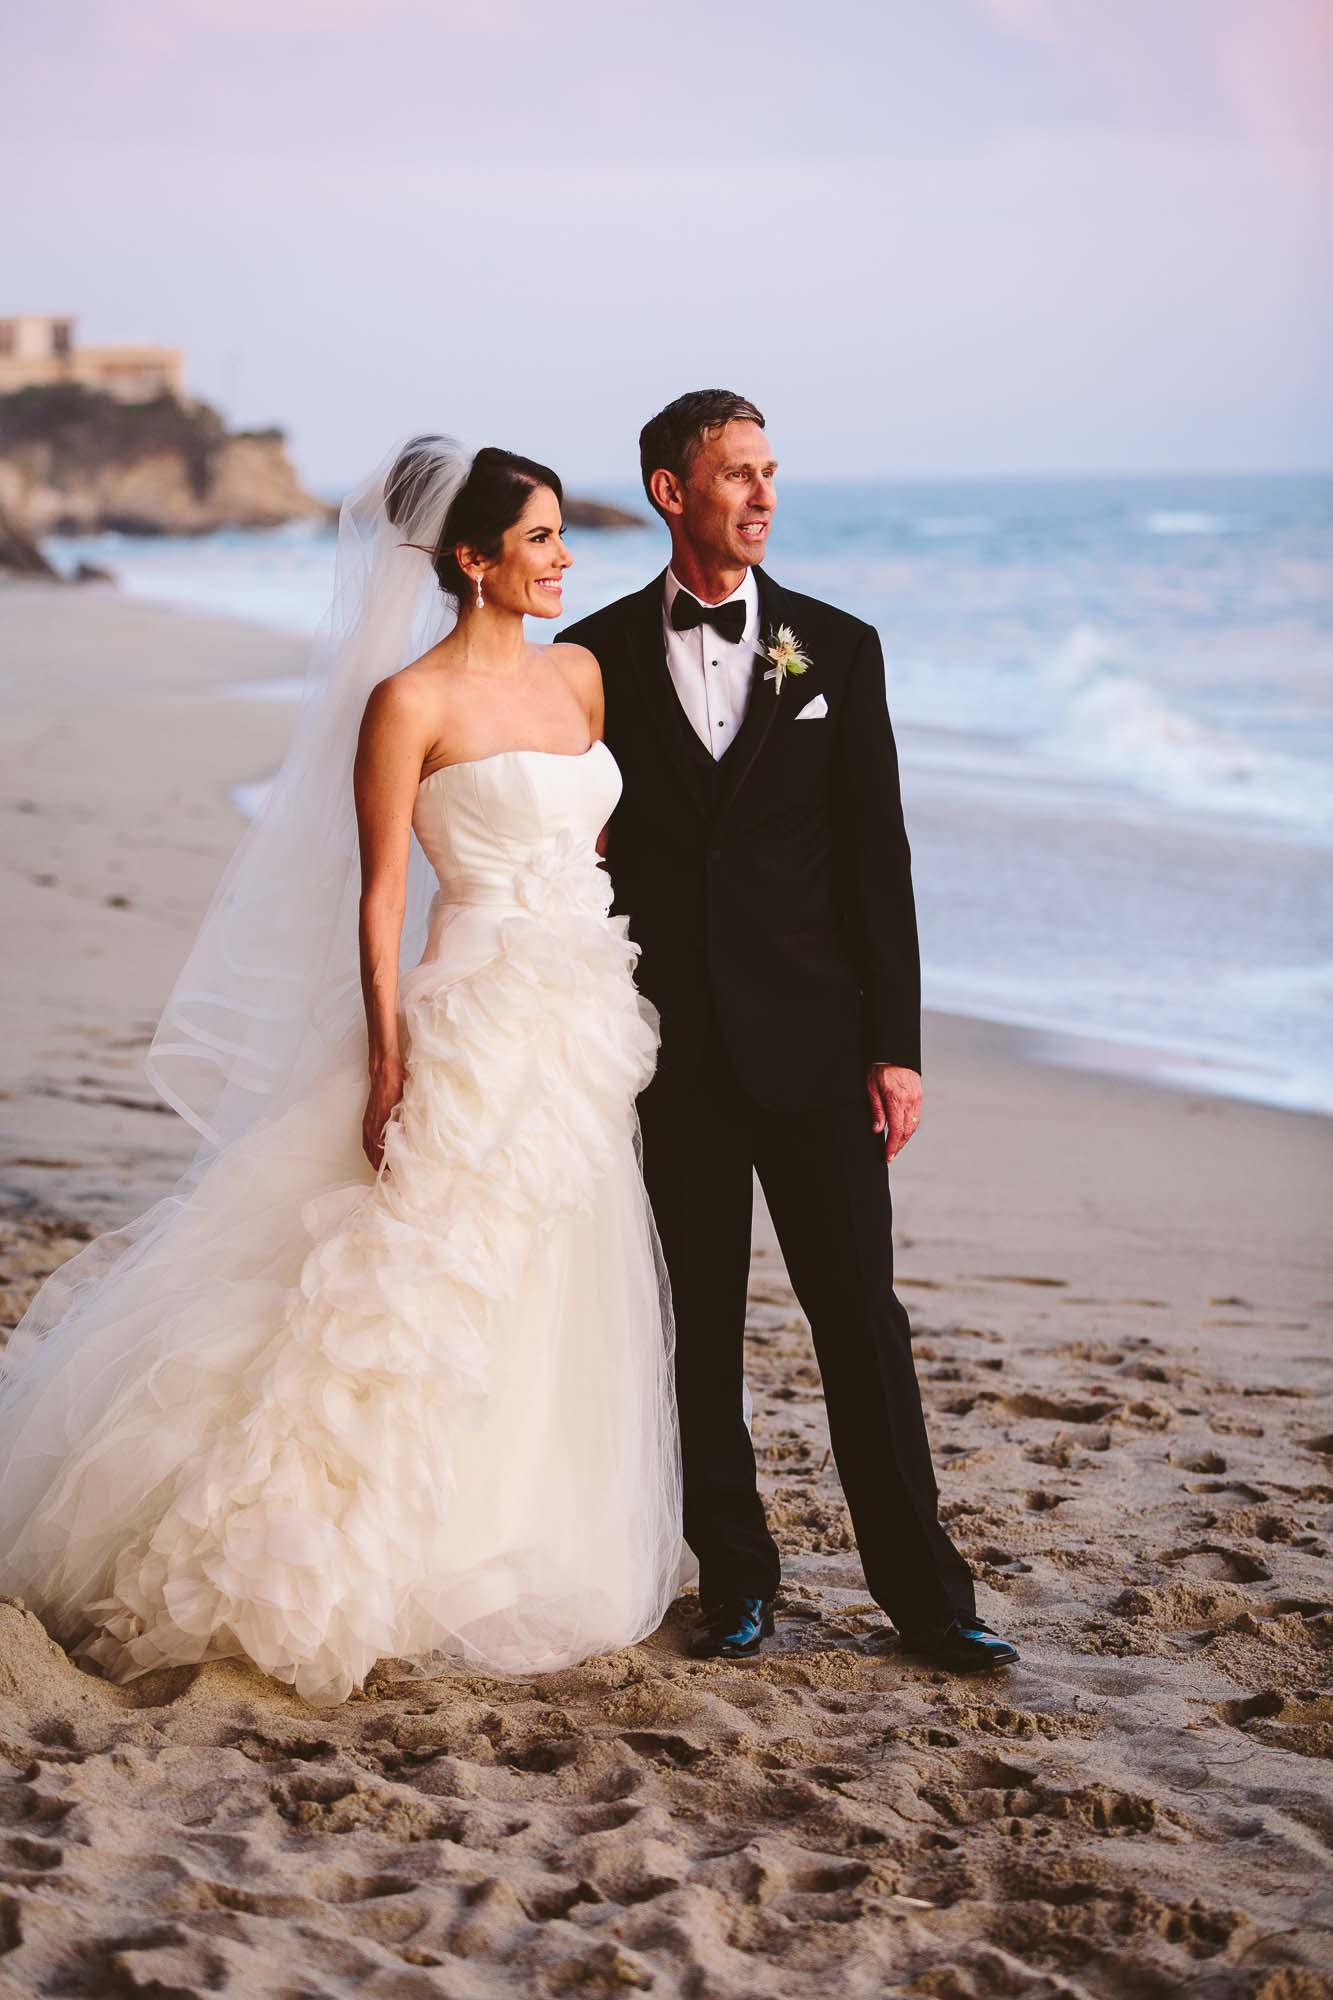 Laguna Beach, CA-Wedding-Marc Amesse Photographer-201652ZN9A7729.jpg